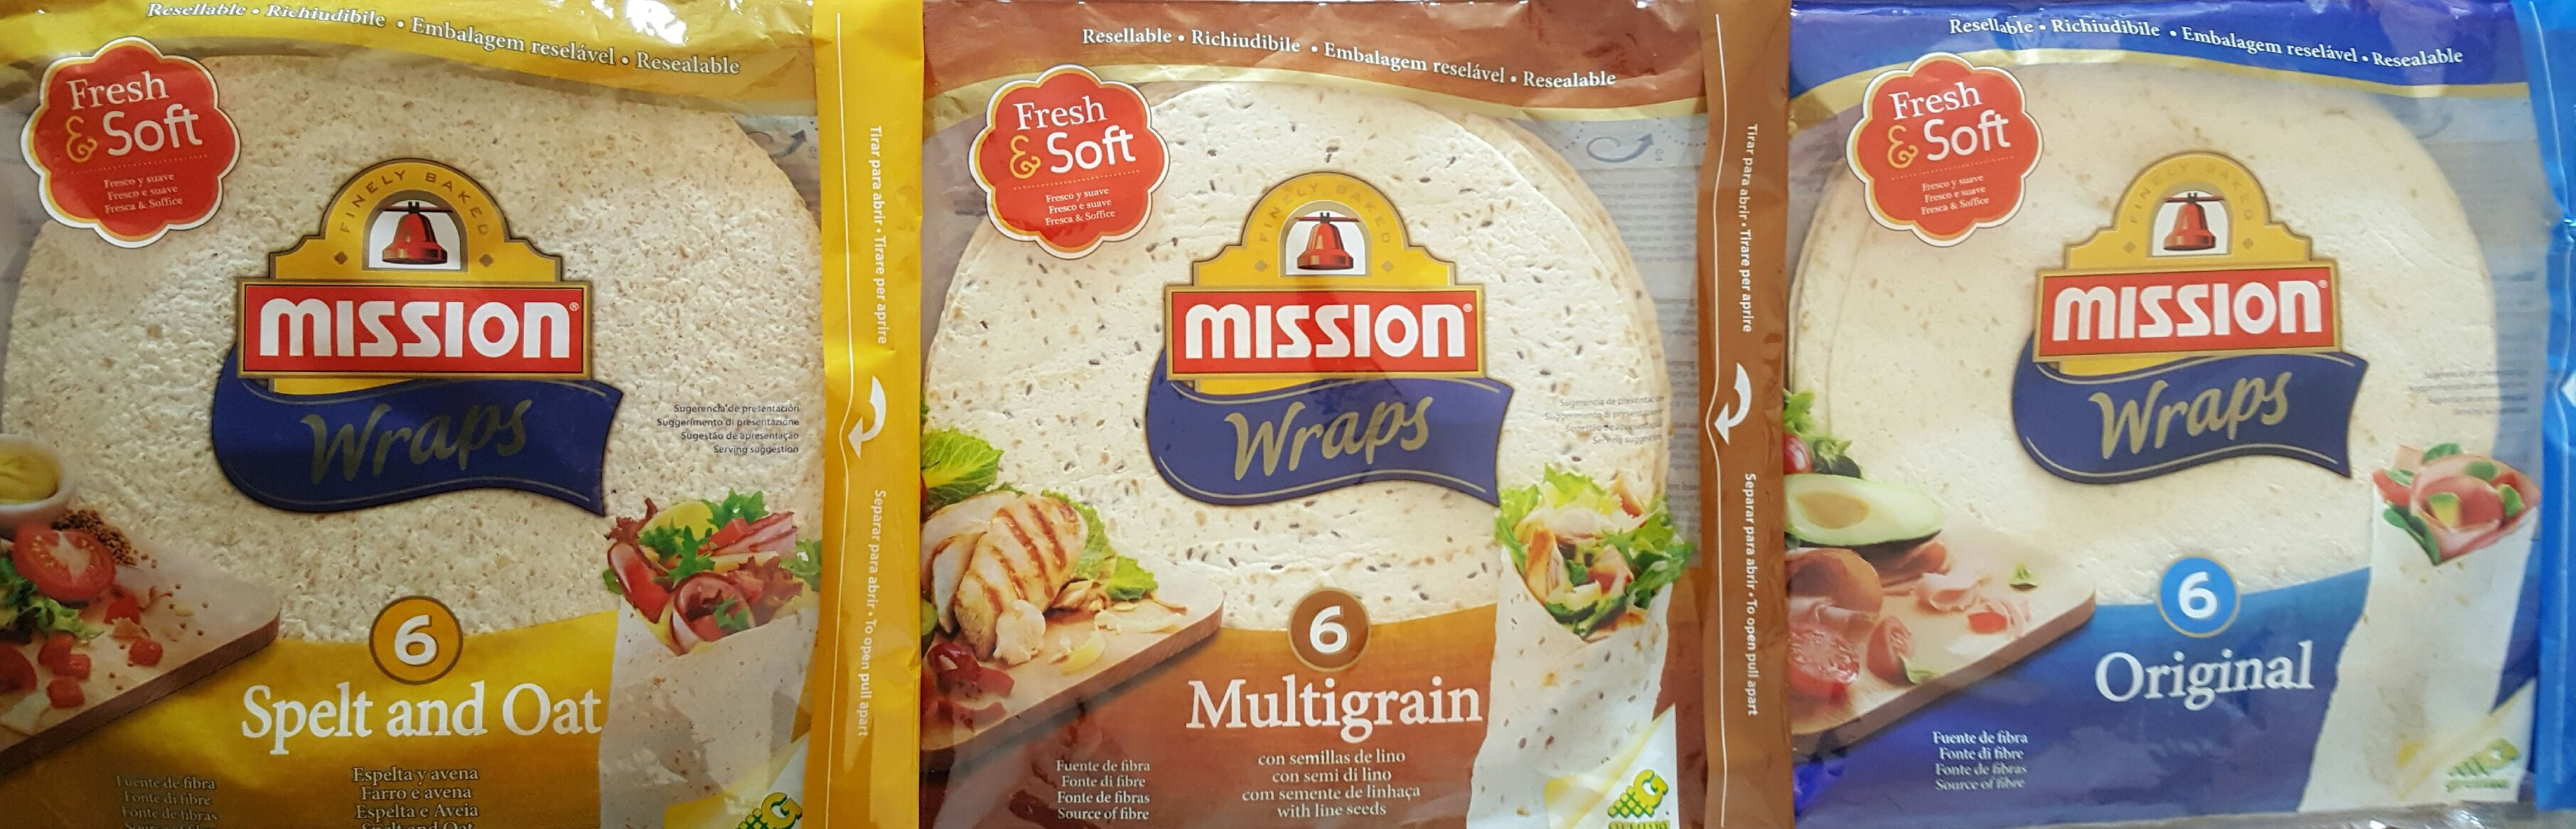 Mission wraps mamistarsblog